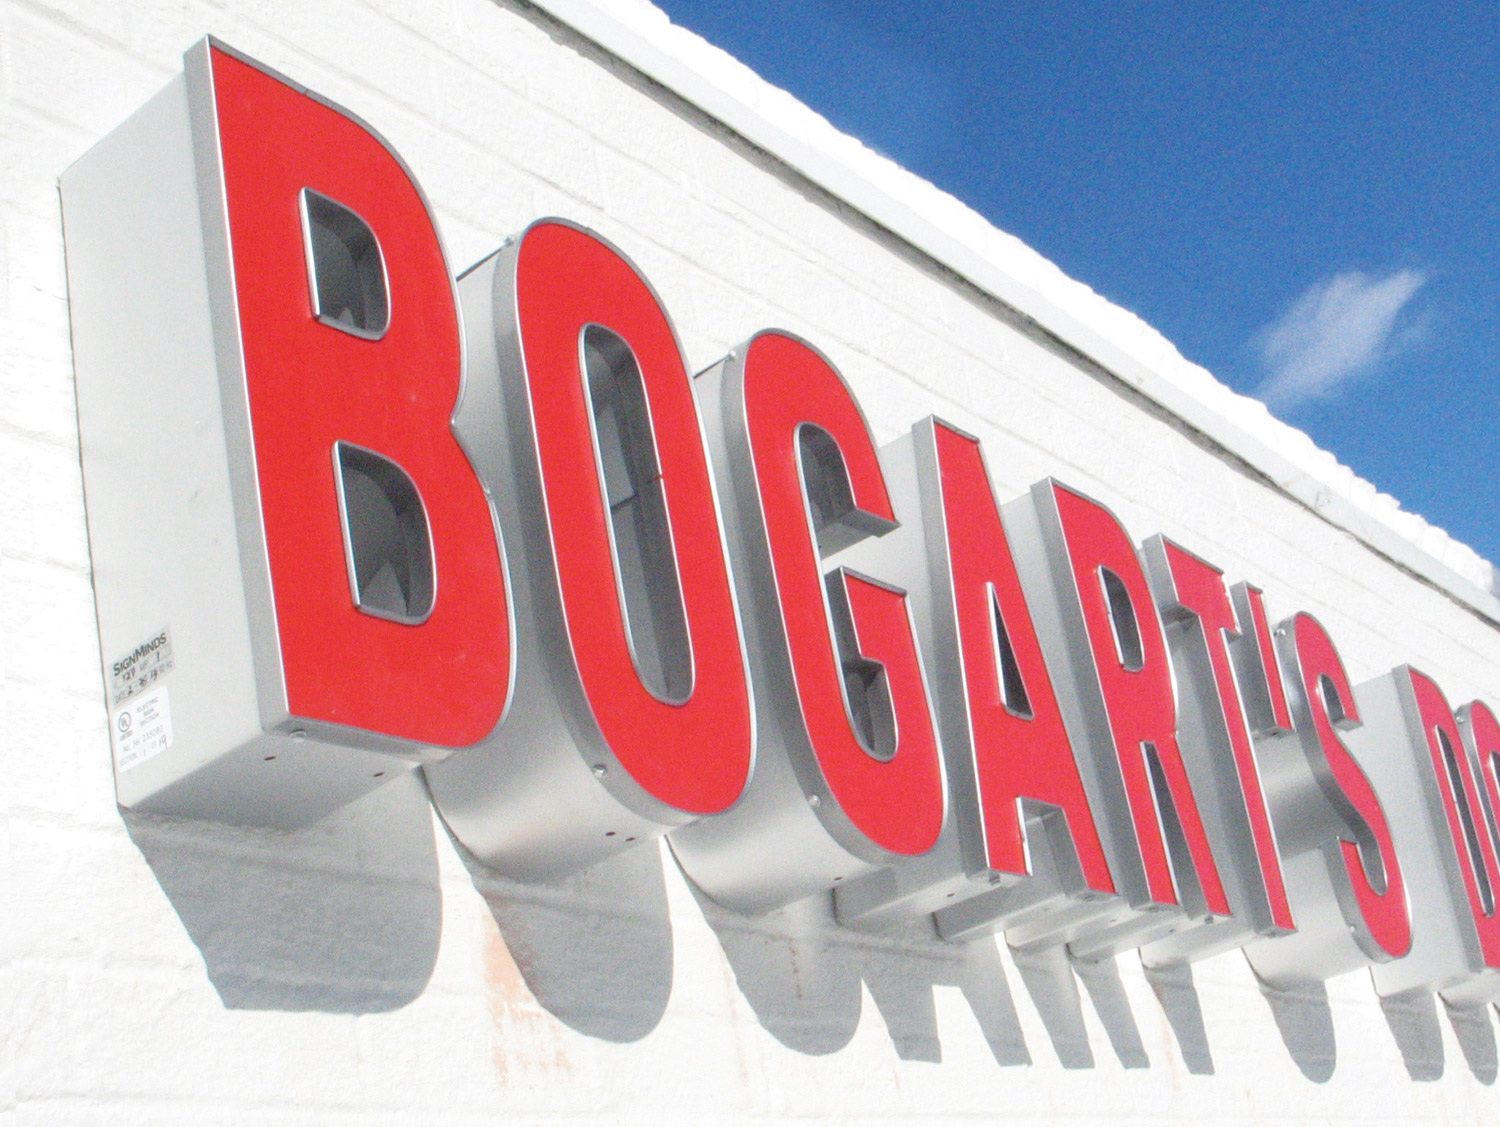 Bogarts-Doughnut-Co-Sign-03.jpg